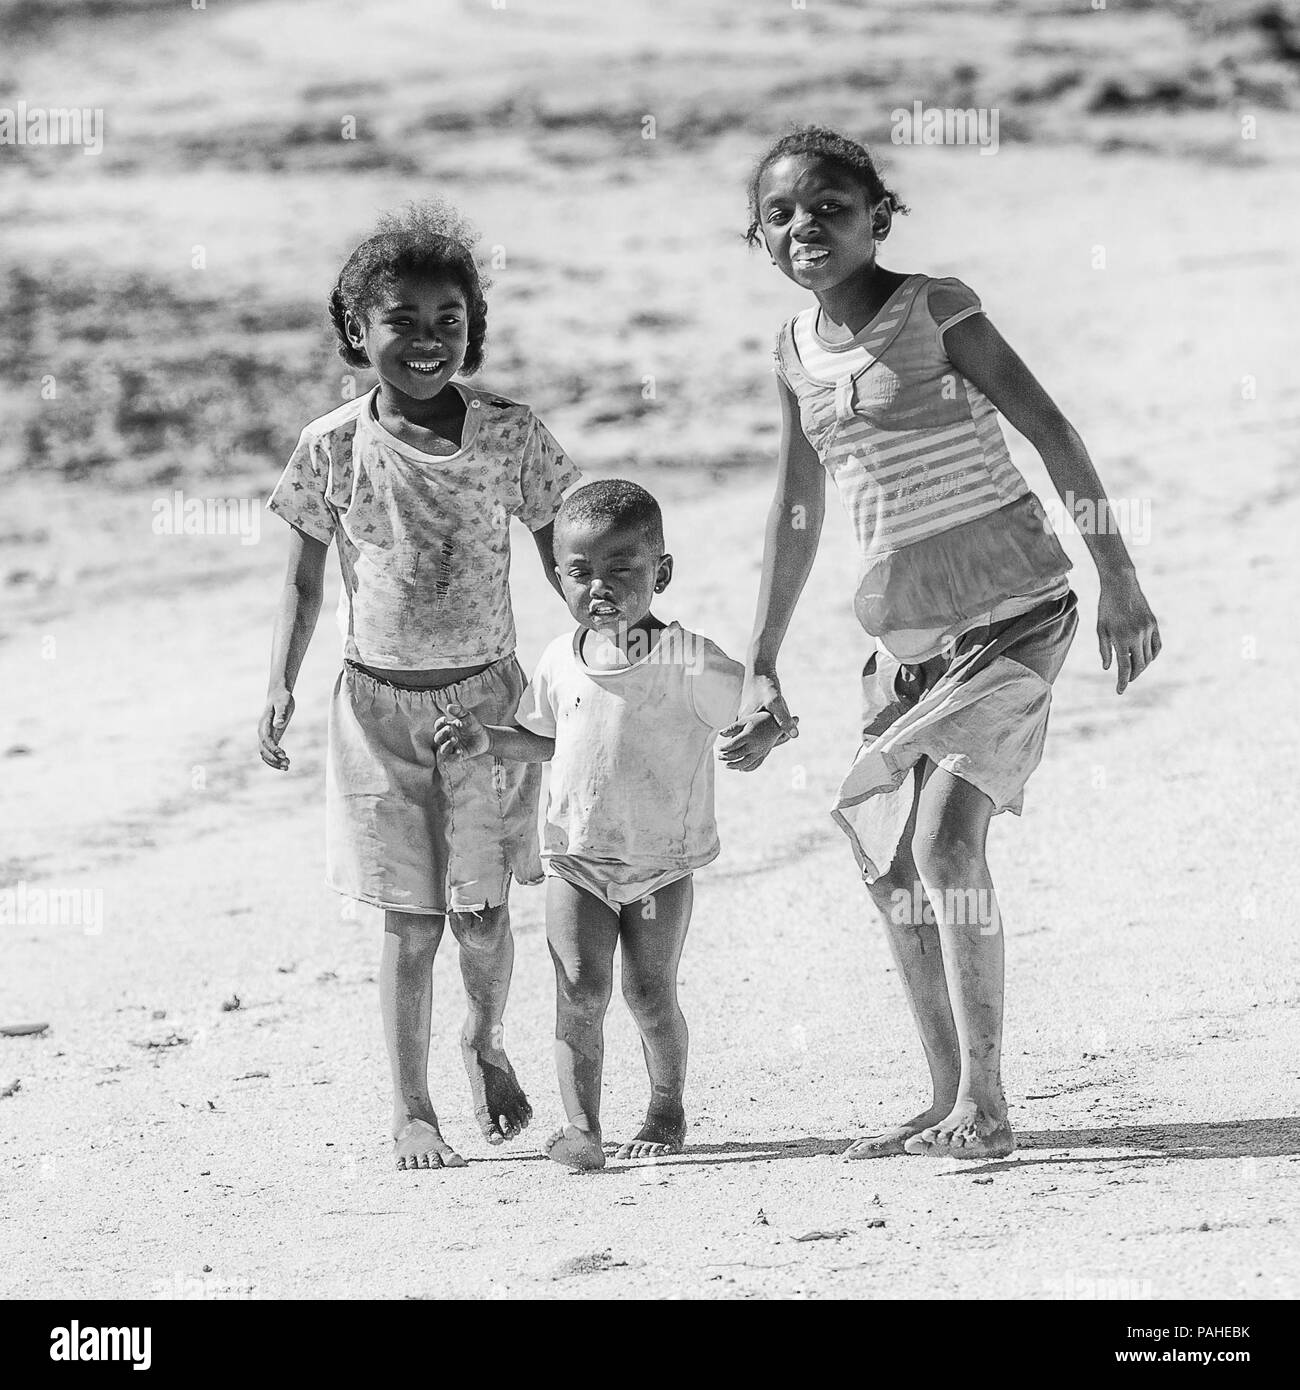 ANTANANARIVO, MADAGASCAR - JULY 3, 2011: Unidentified Madagascar beautiful girls and a boy walk over the sand. People in Madagascar suffer of poverty  - Stock Image